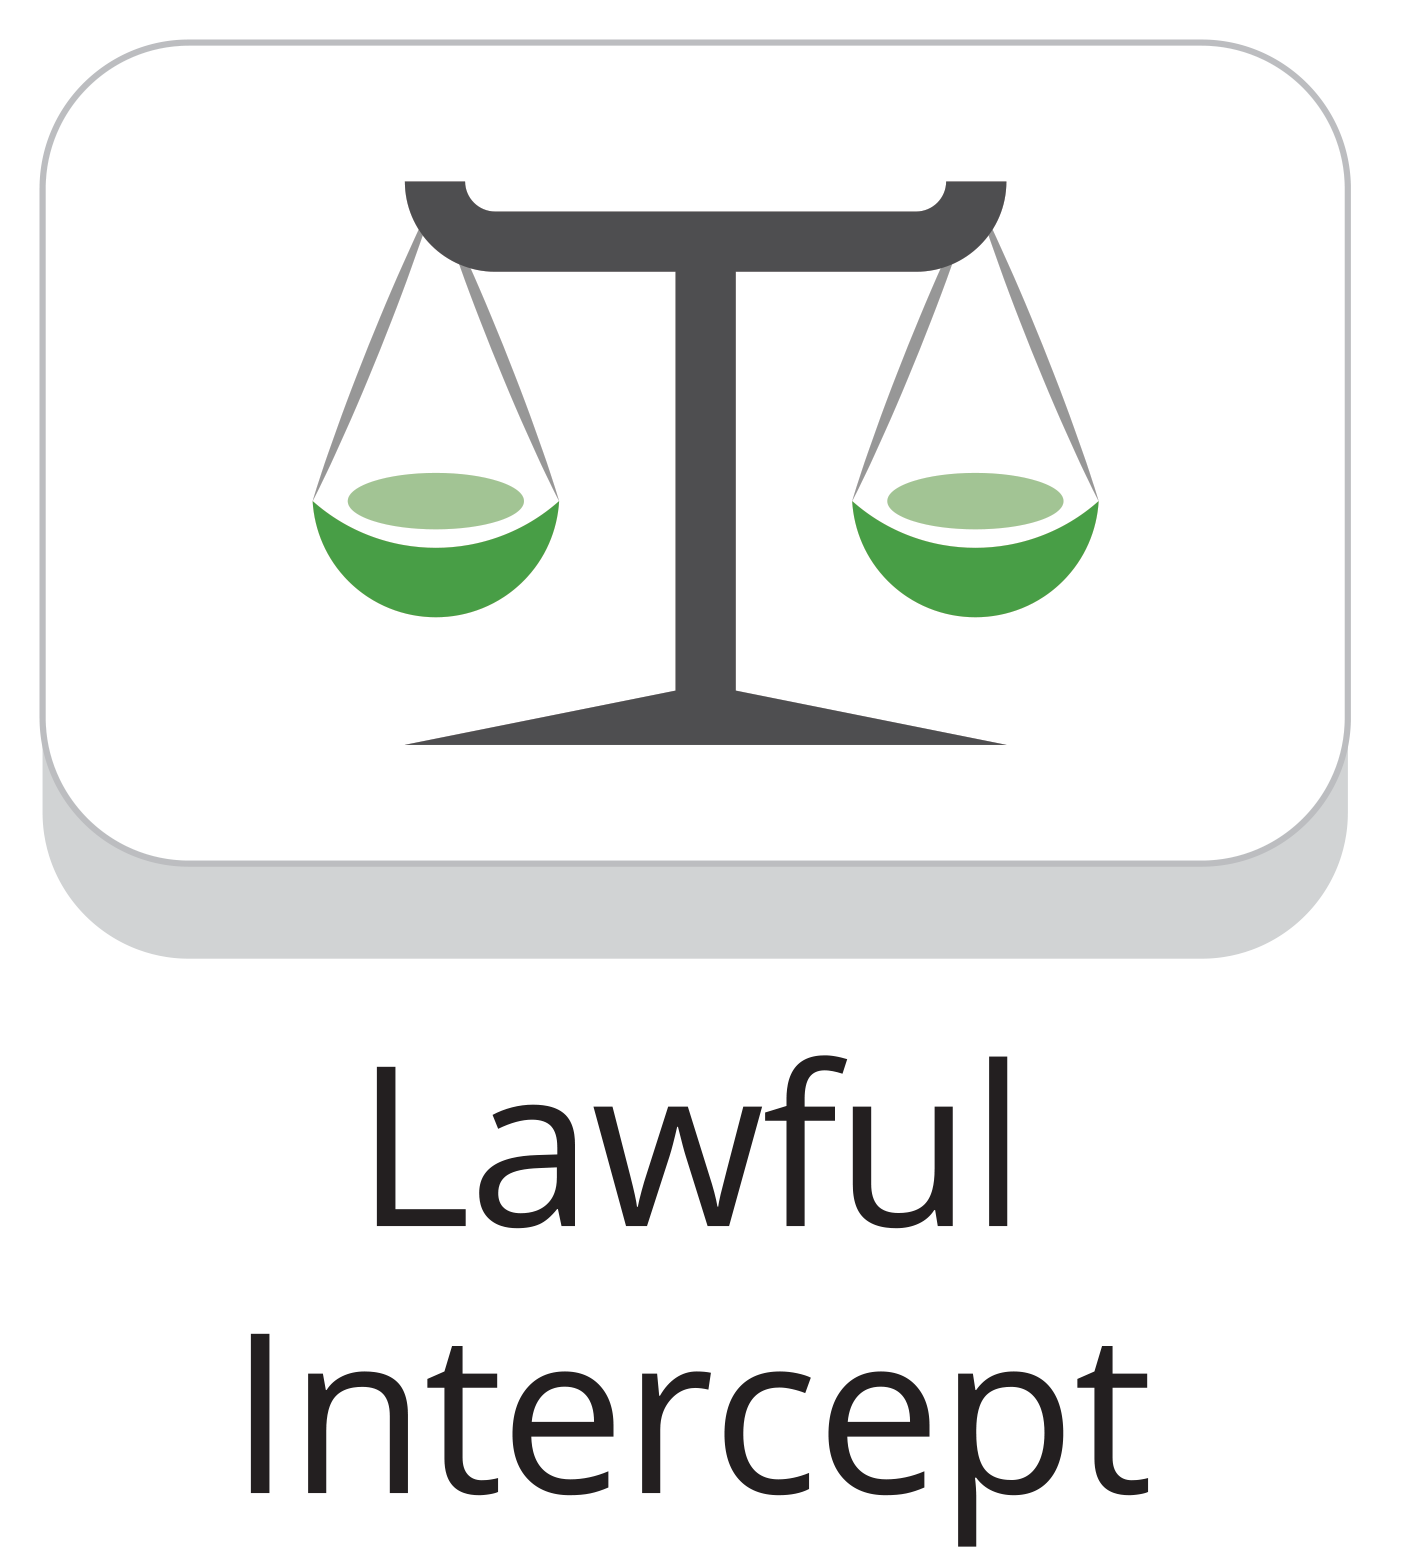 Lawful Intercept